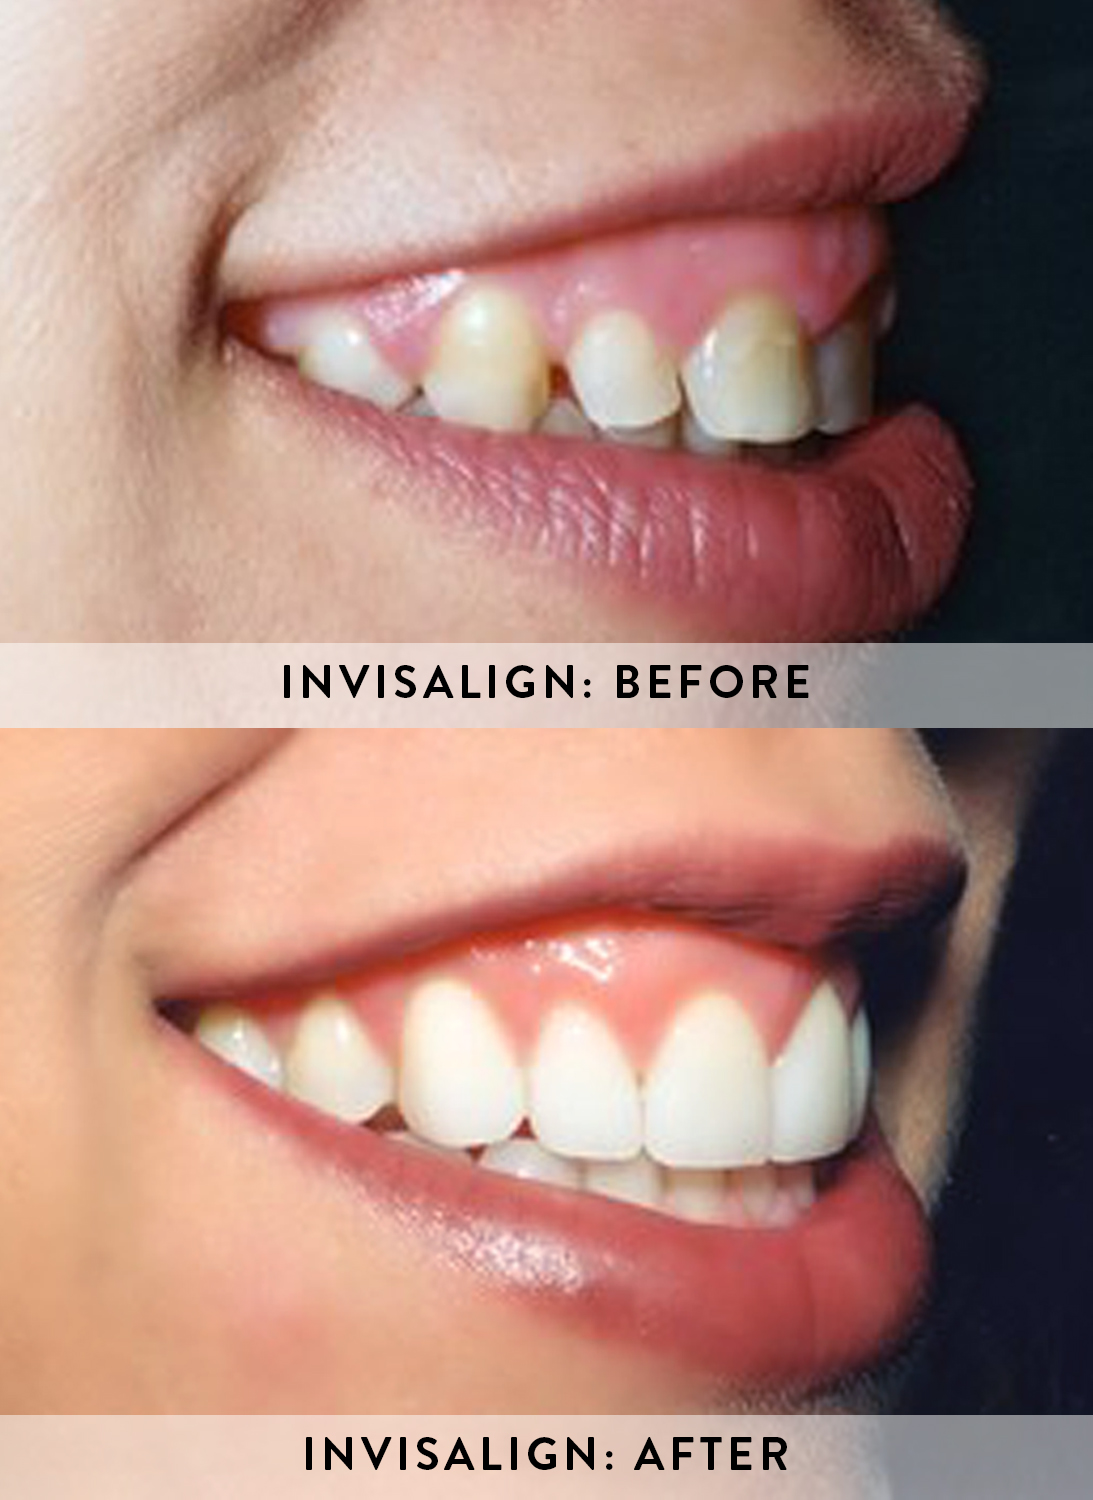 INVISALIGN 3- BEFORE & AFTER.jpg